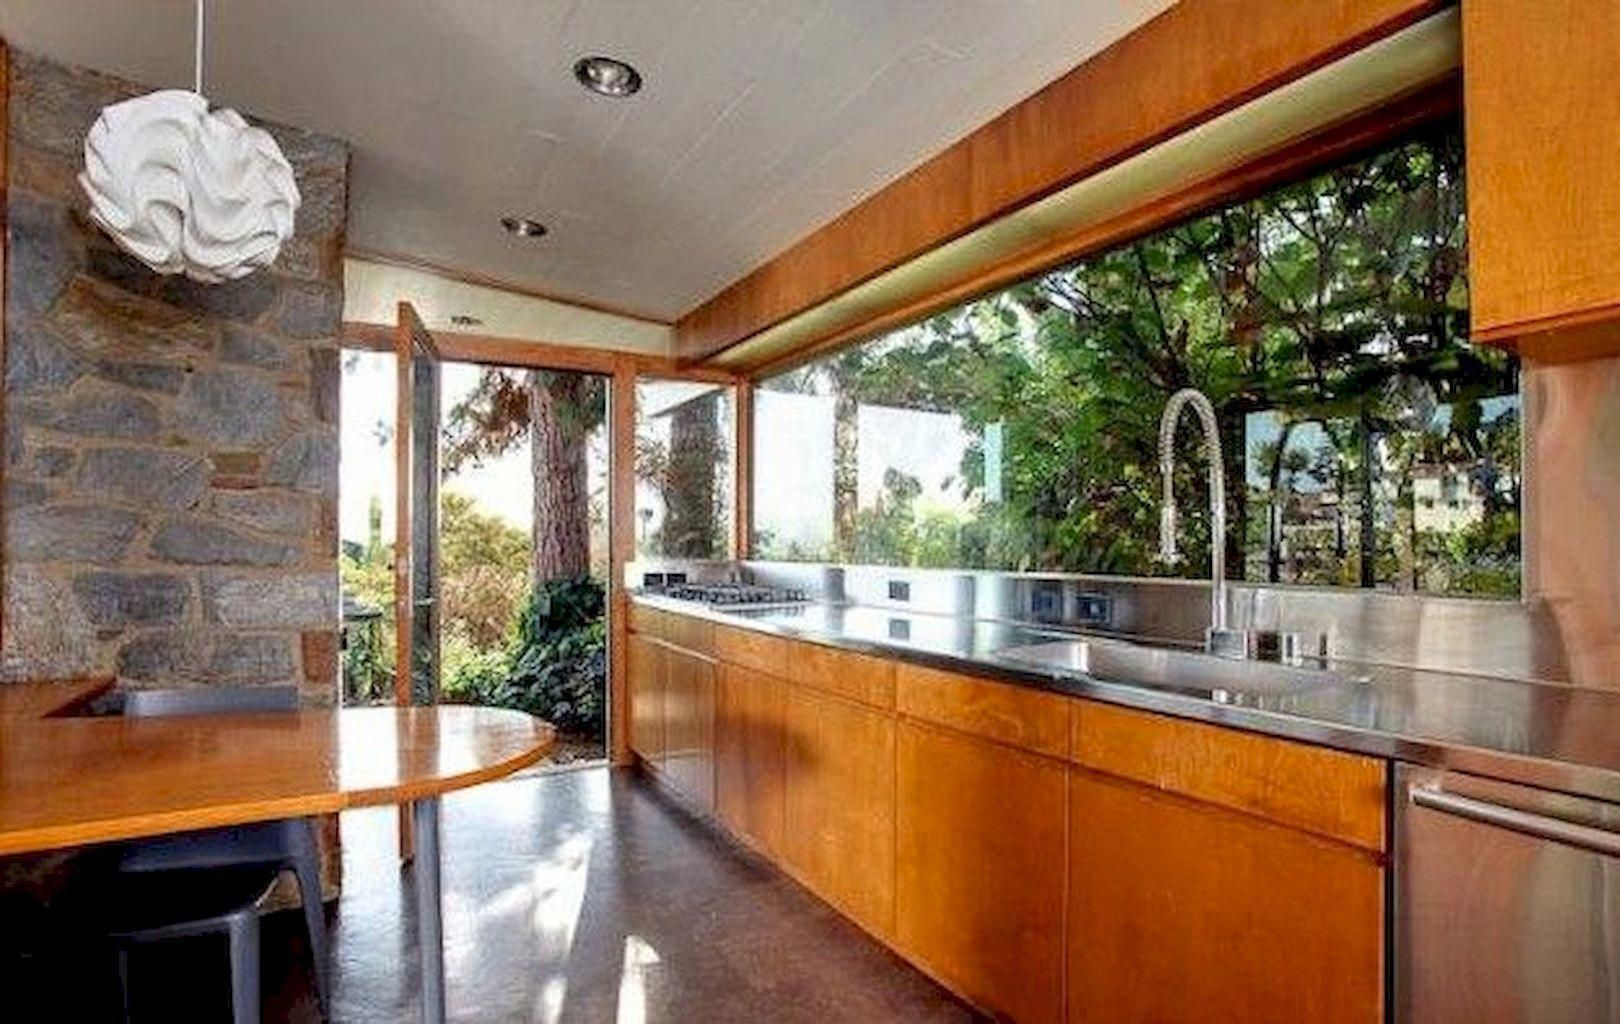 Best 31 Ikea Kitchen Pictures With Images Mid Century 400 x 300